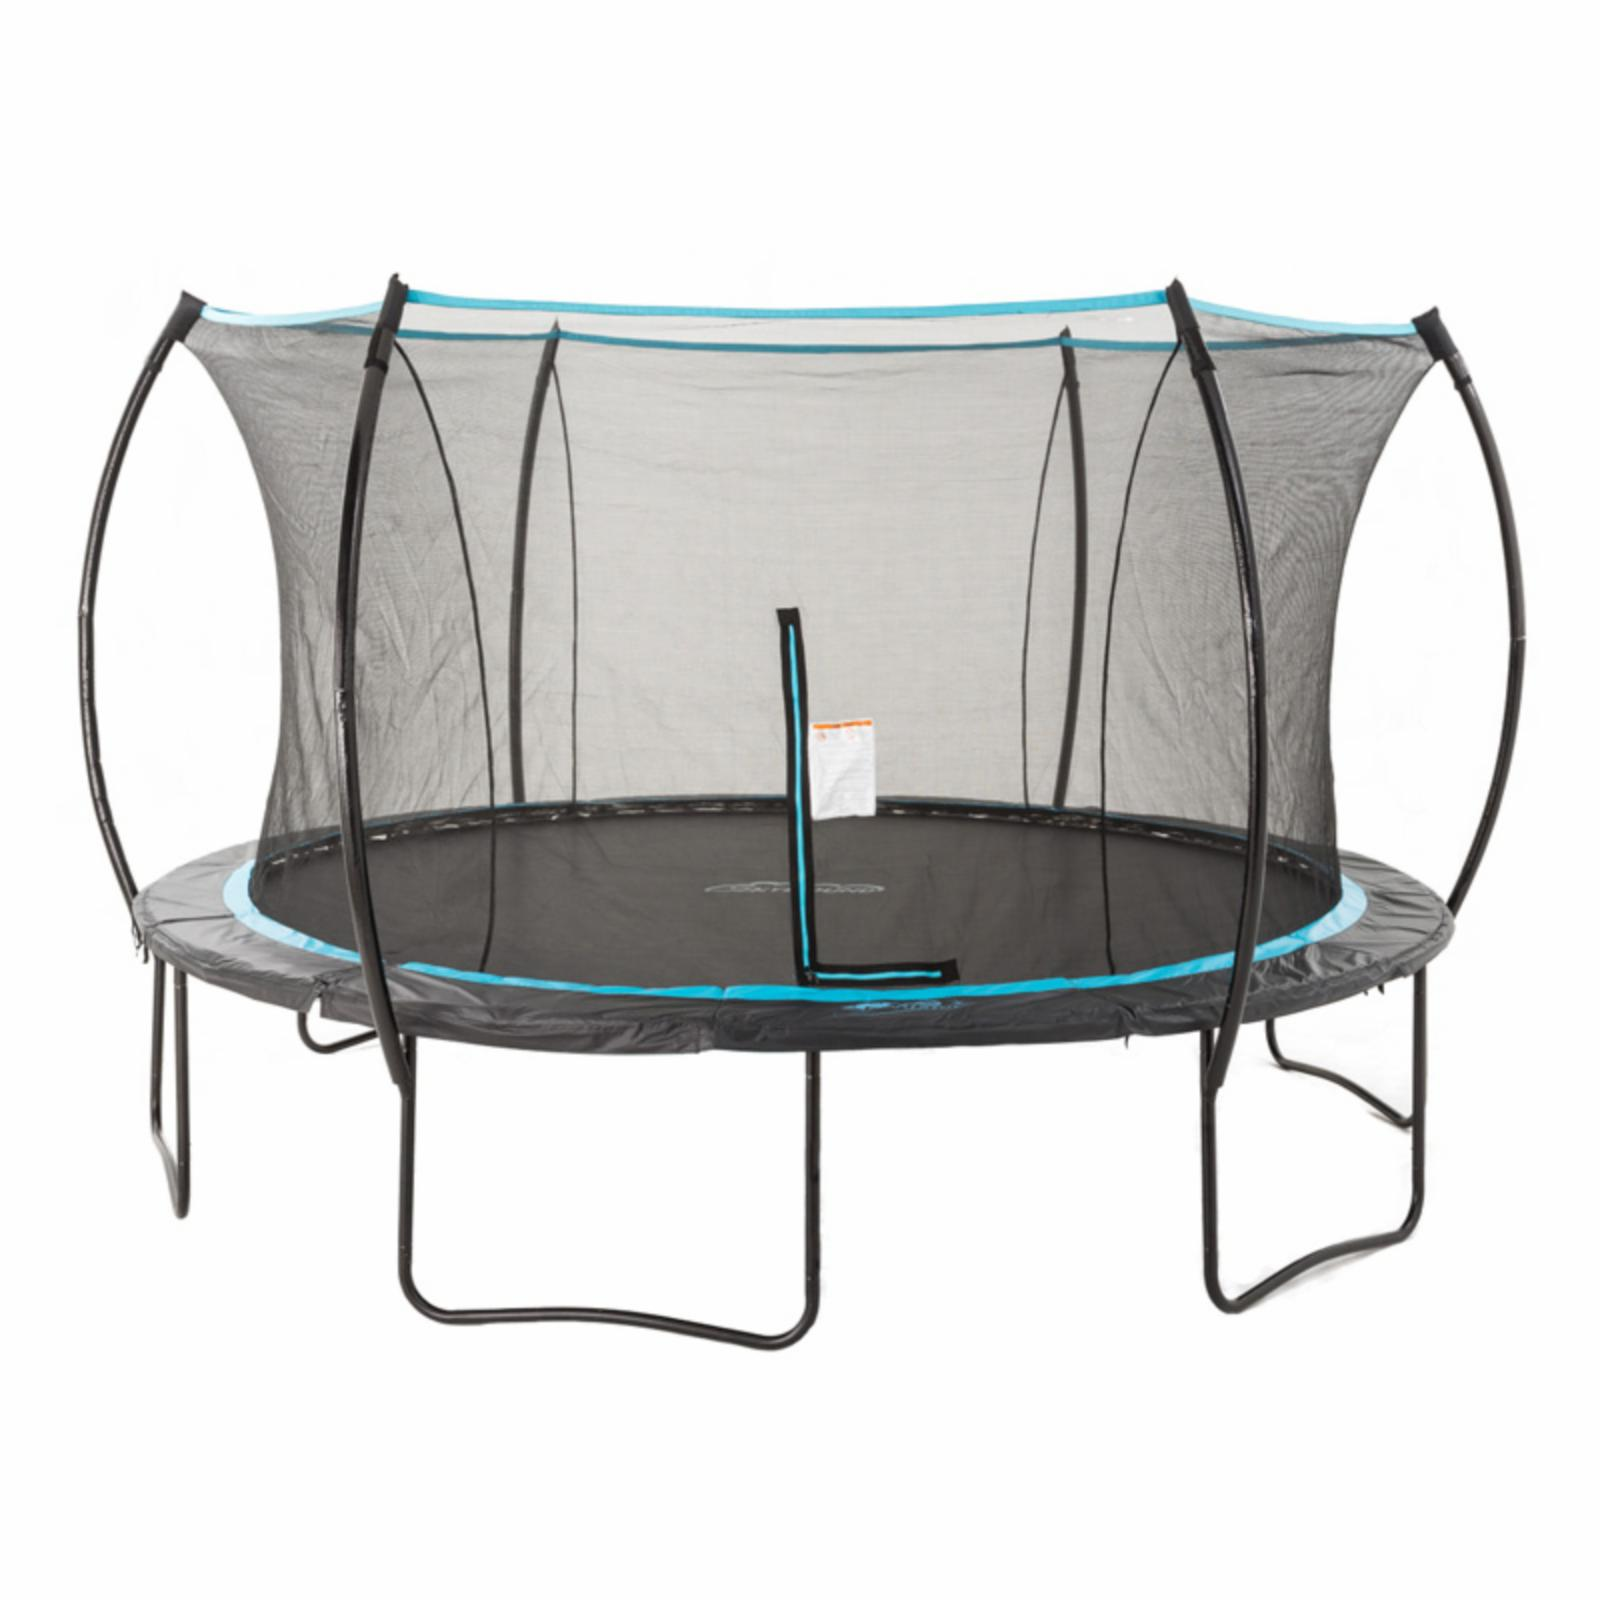 SkyBound Cirrus 14 ft. Trampoline with Full Enclosure Net System - SB-T14CIR01